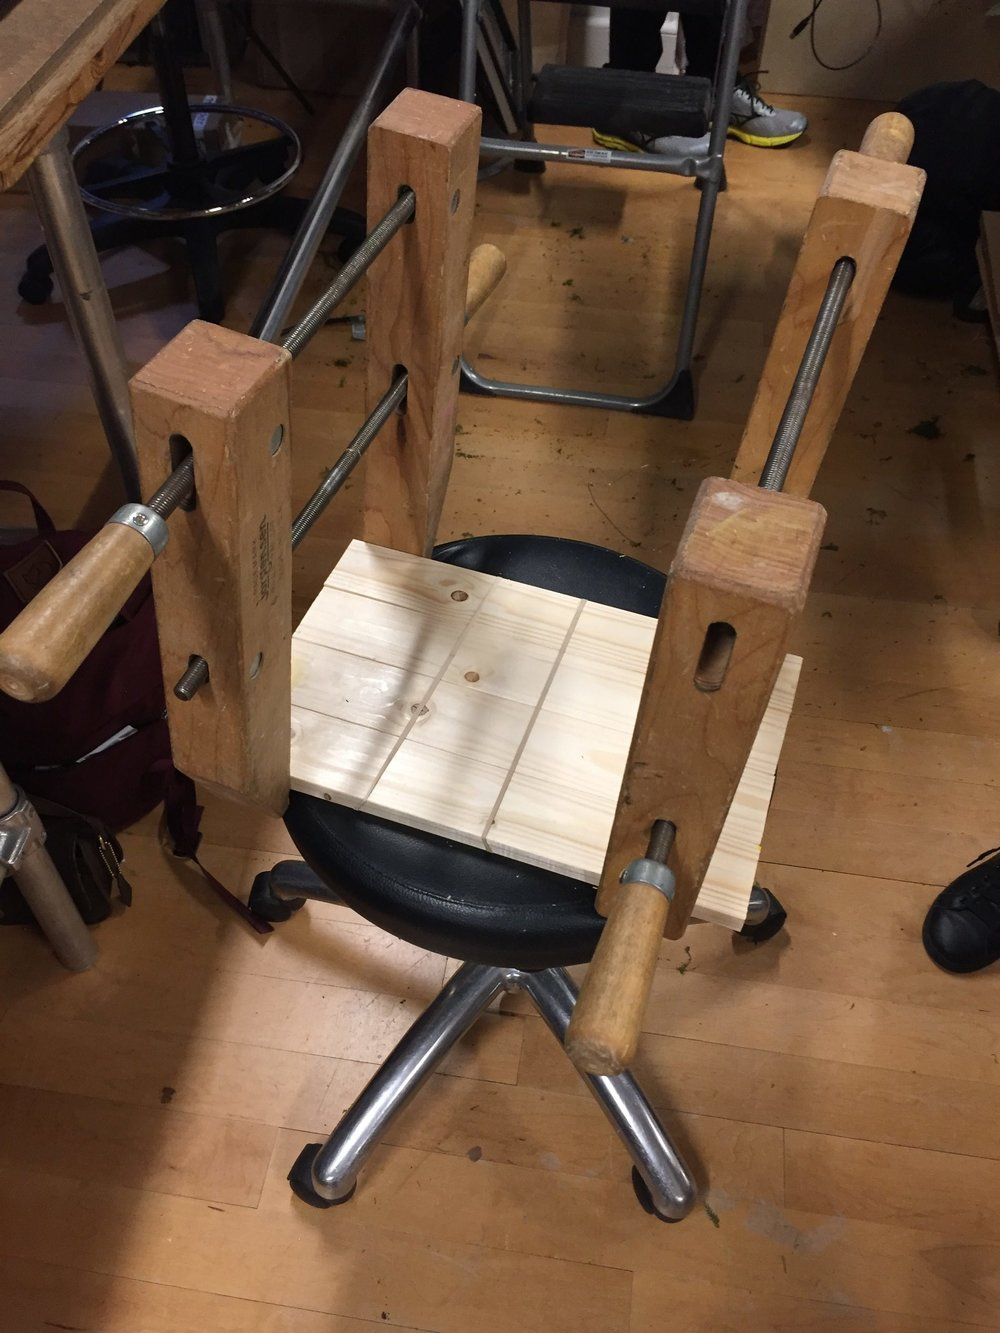 I glued the top of the table using wood glue, rubber bands, and these large wooden clamps and I let it sit overnight.